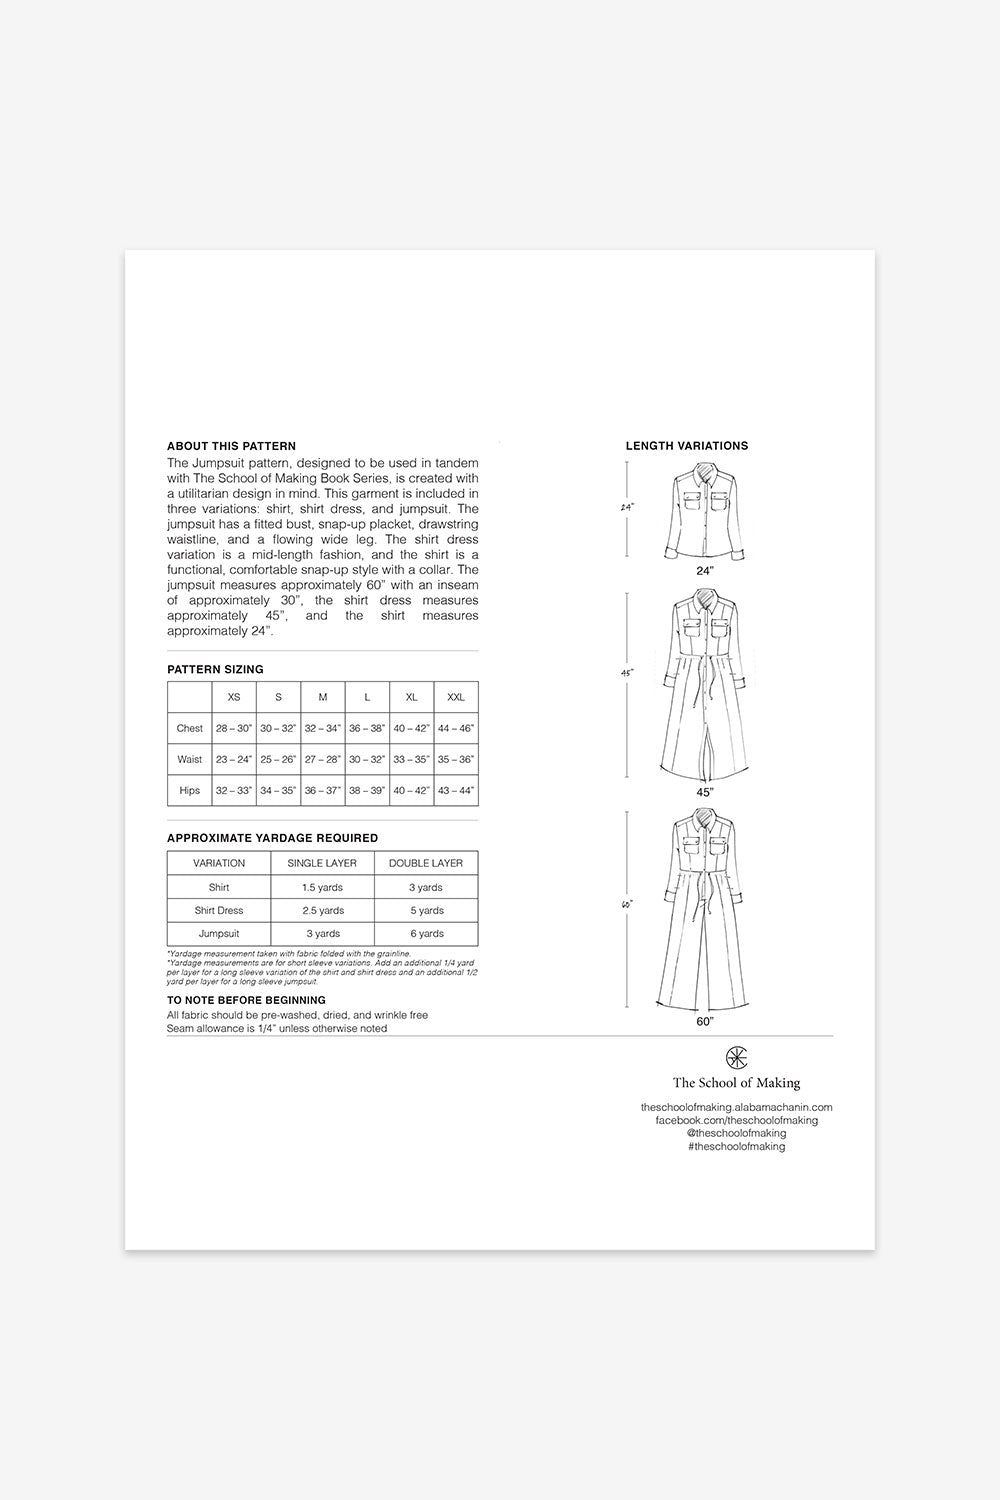 The School of Making The Jumpsuit Pattern with Dress, Shirt and Jumpsuit Pattern Variations